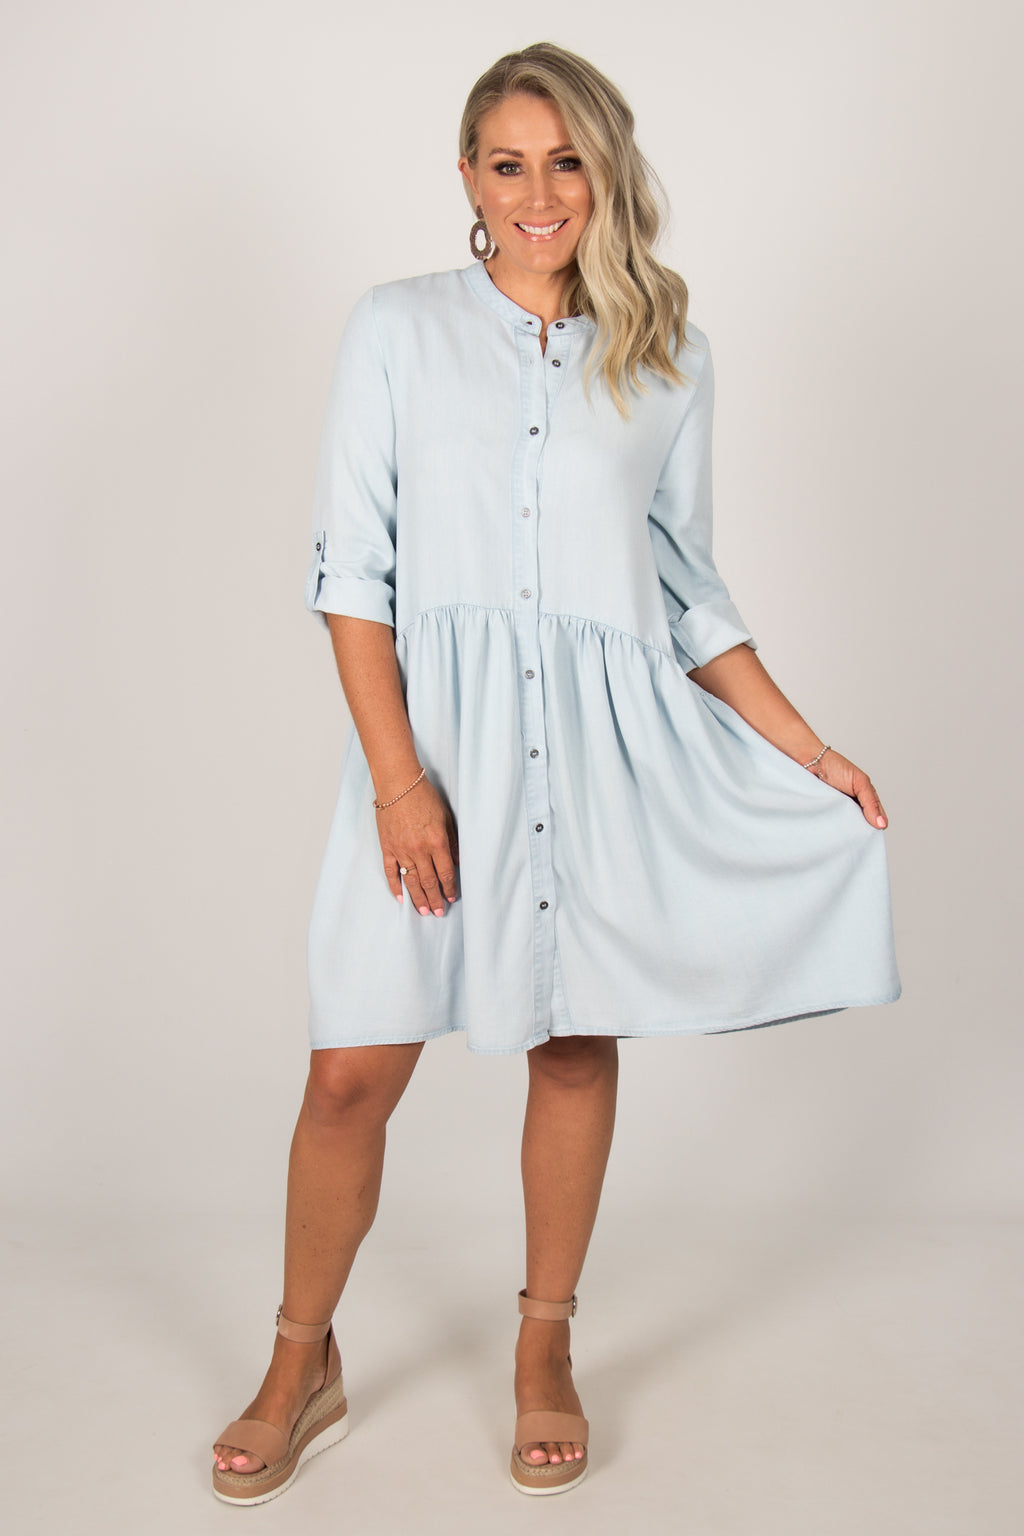 Frankie Dress in Chambray